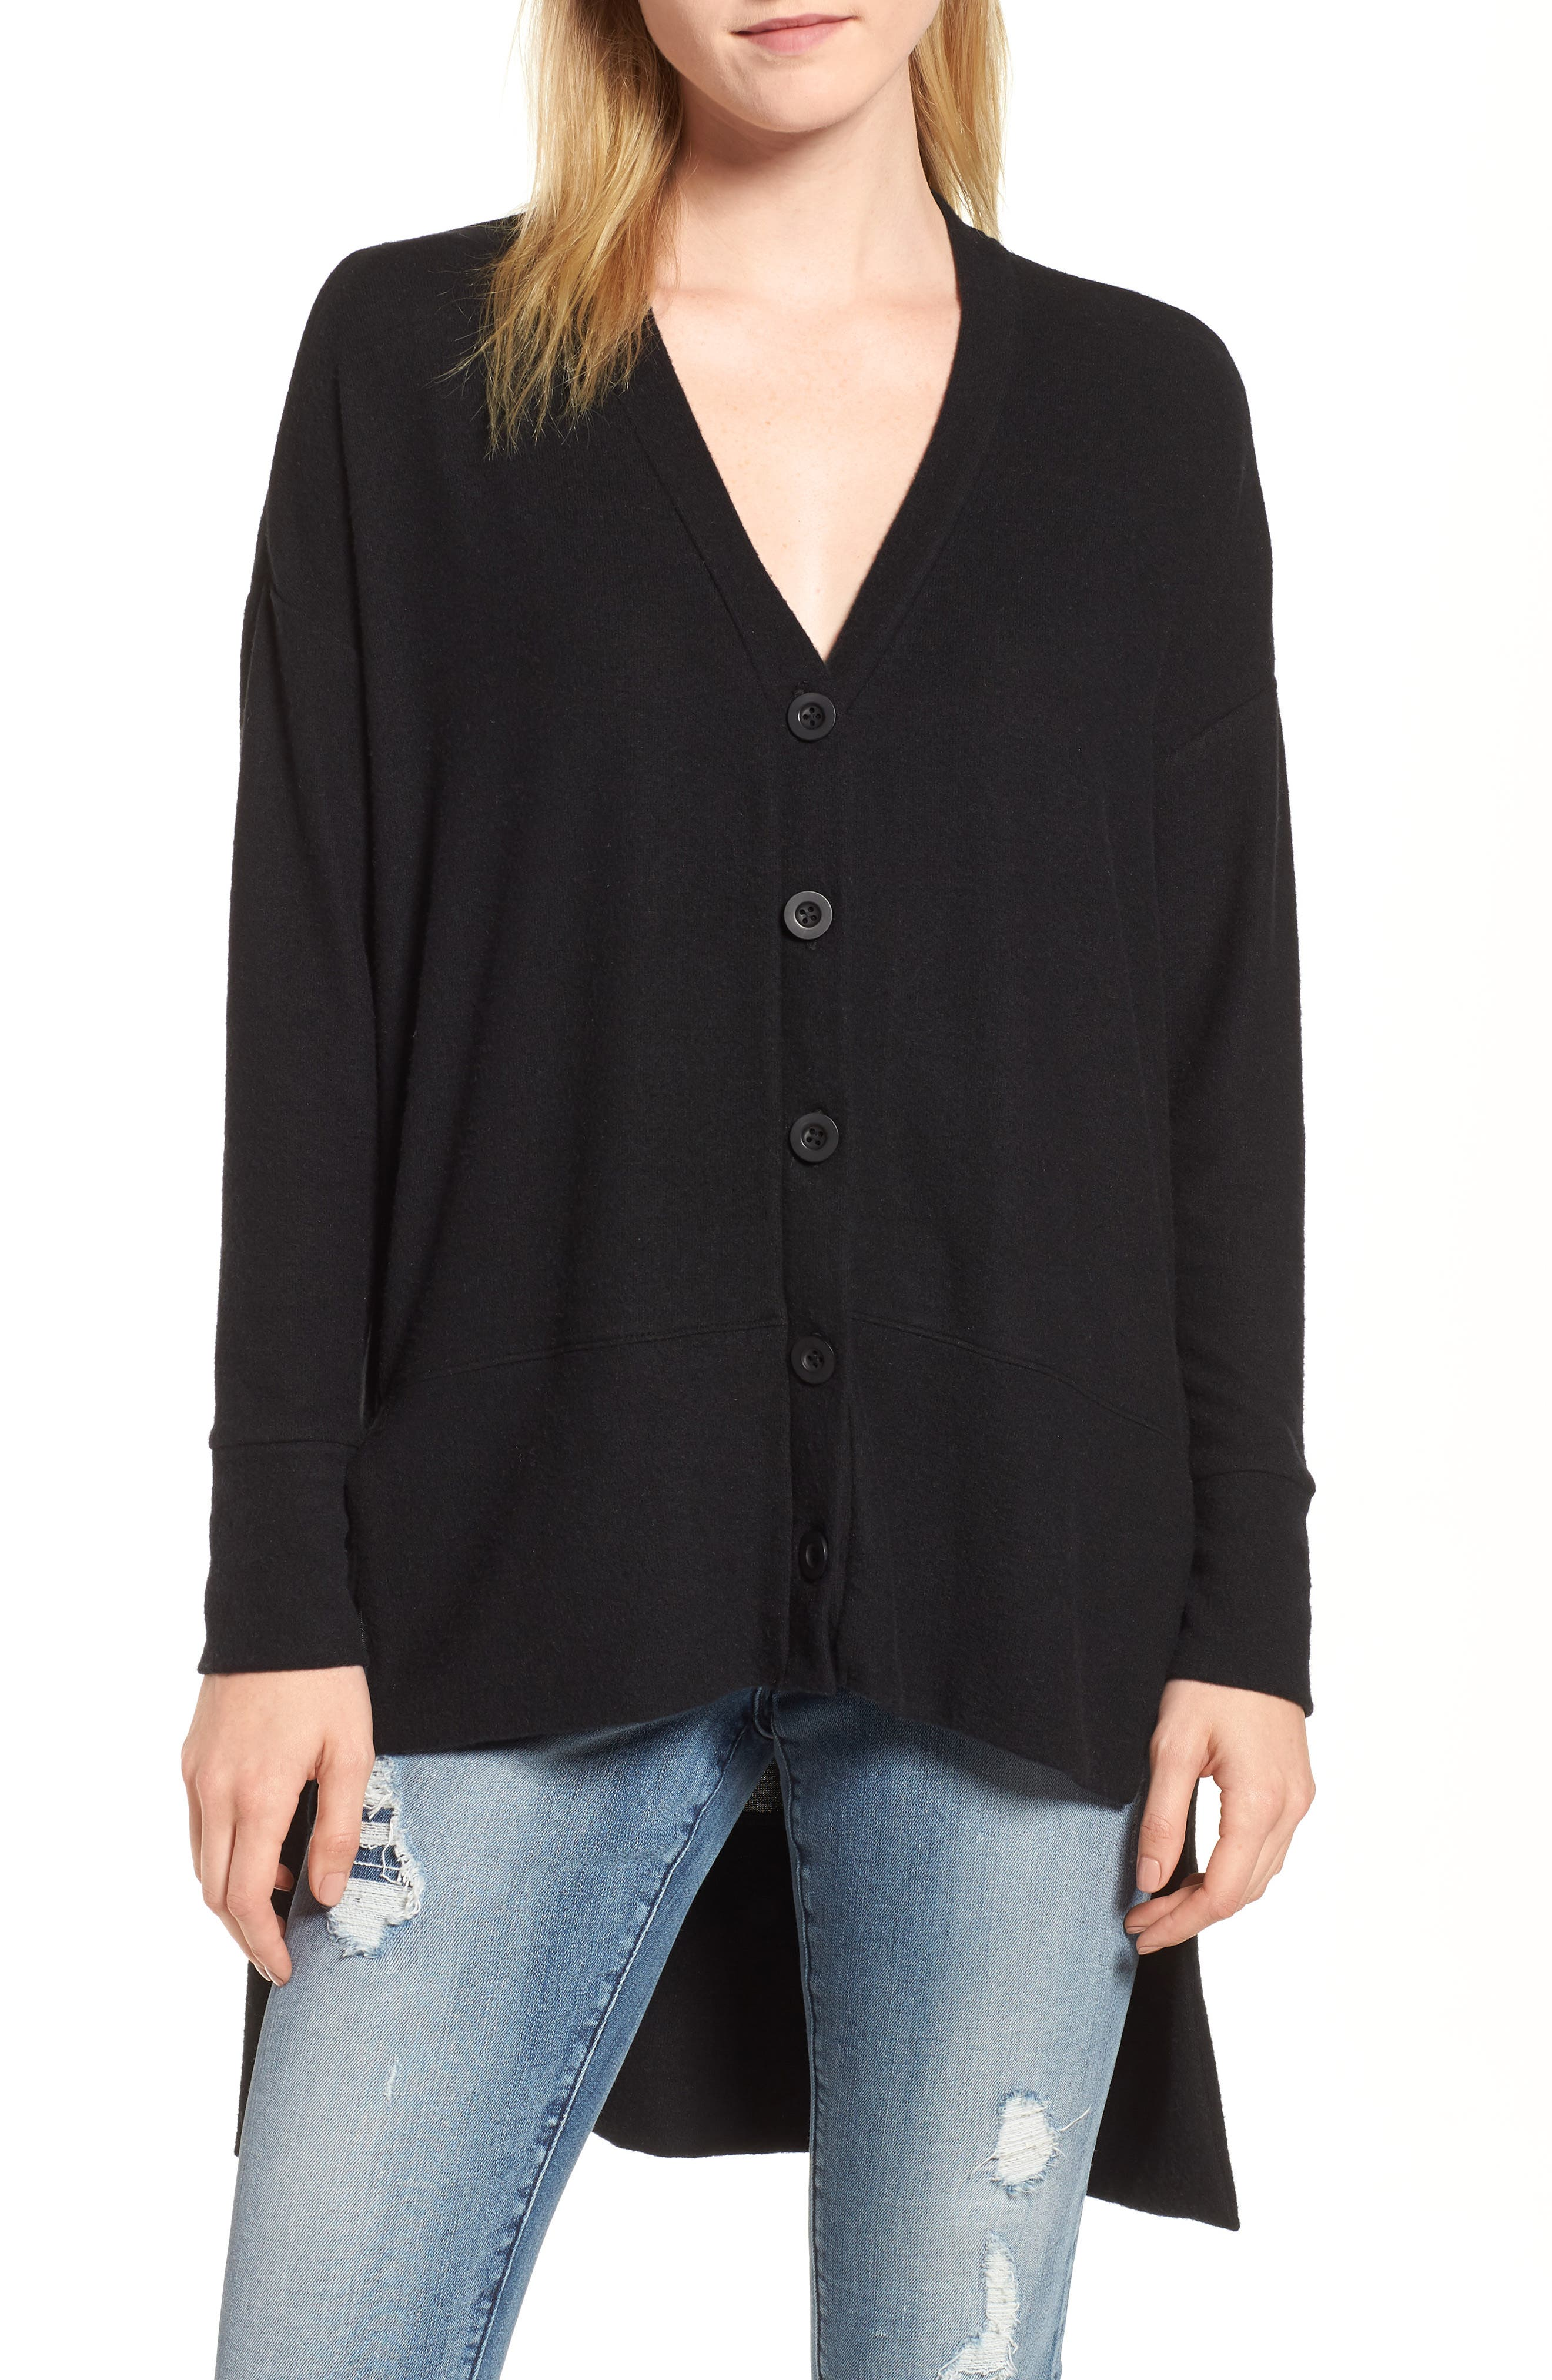 GIBSON High/Low Easy Cardigan, Main, color, BLACK